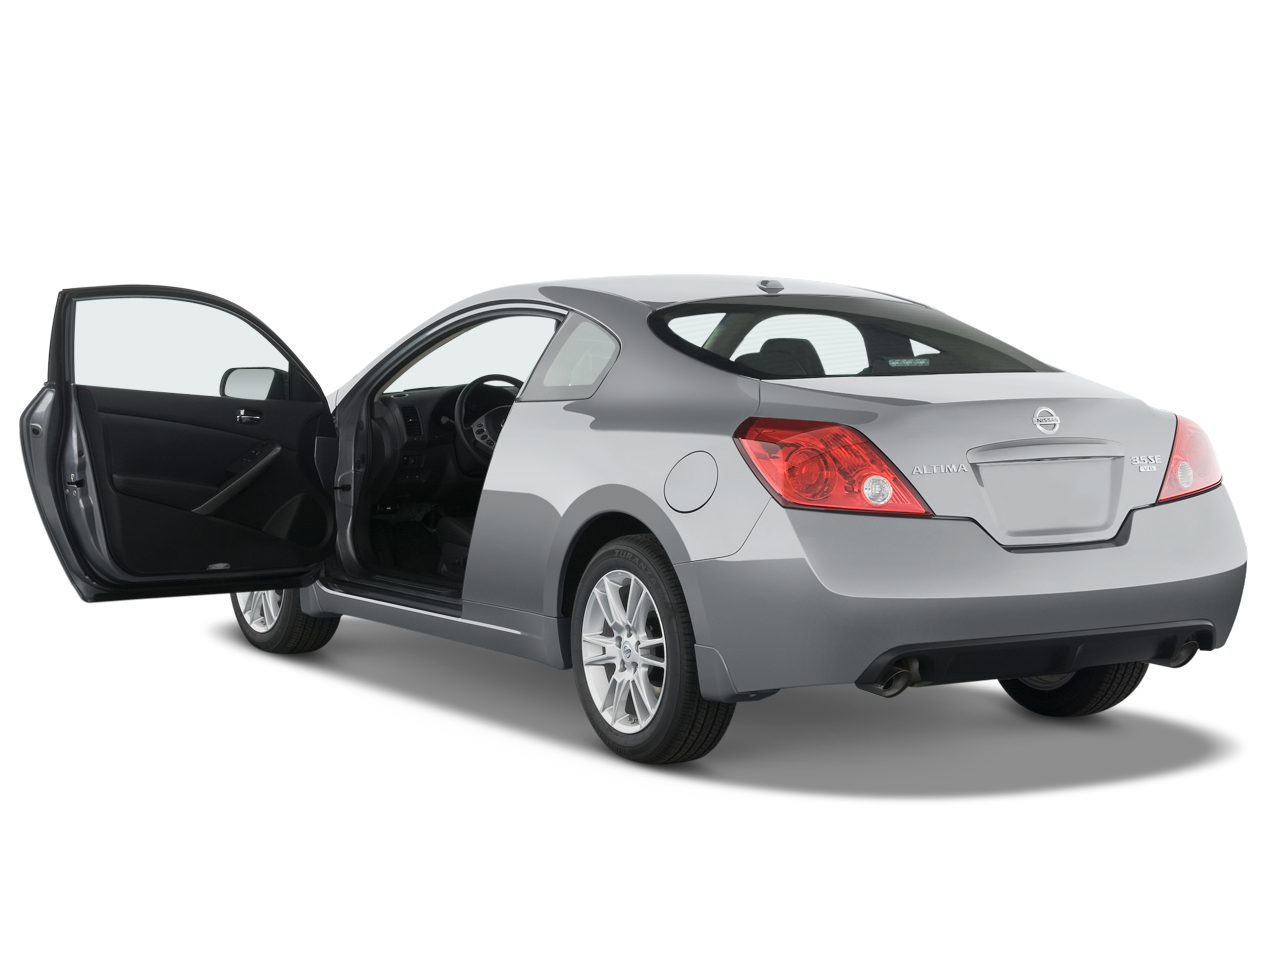 2008 nissan altima coupe latest car truck and suv road tests and reviews automobile magazine. Black Bedroom Furniture Sets. Home Design Ideas